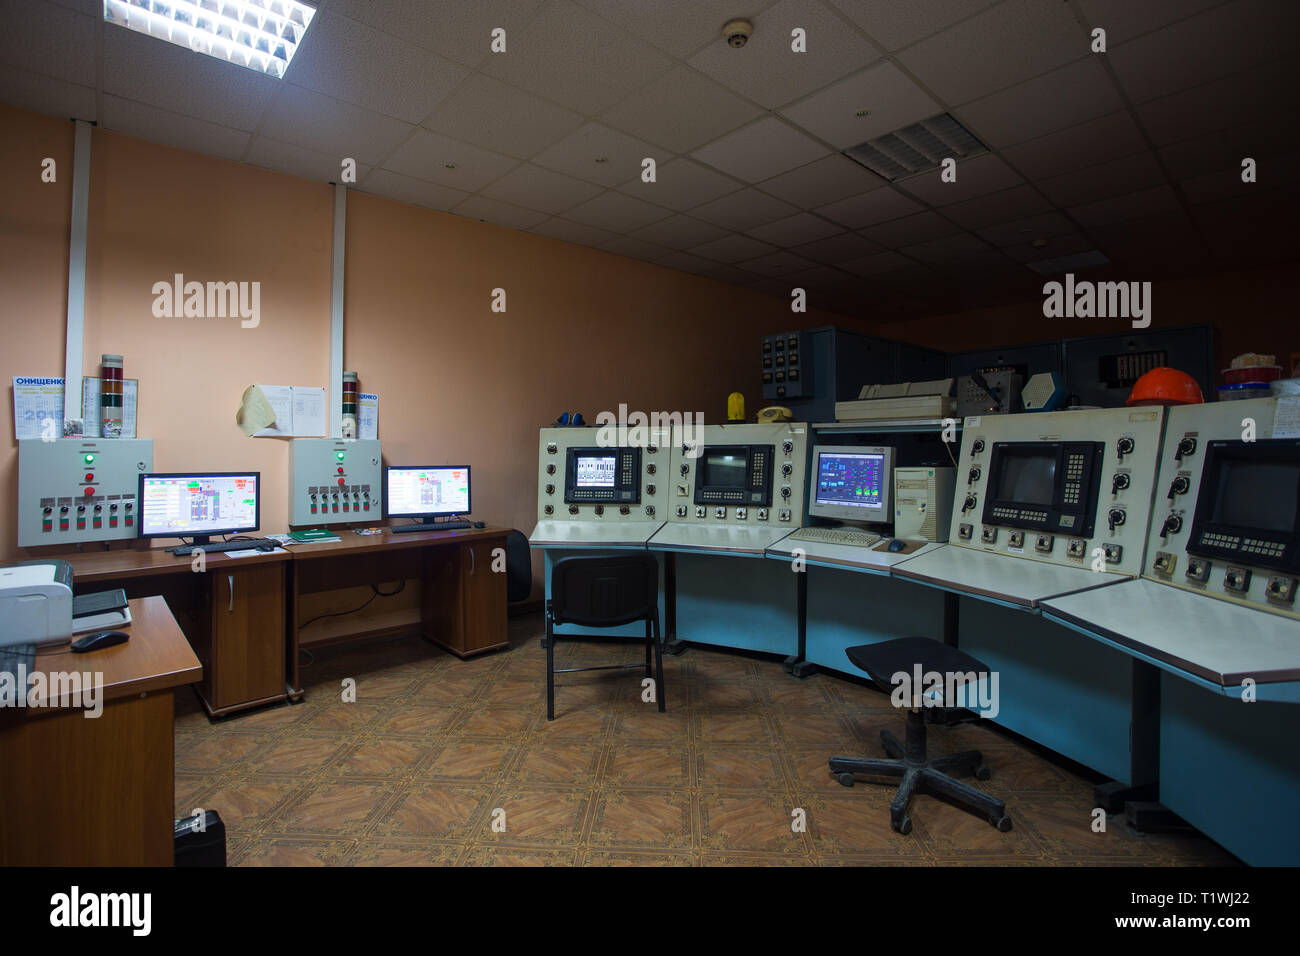 The theme of enterprise and plant automation. Inside the factory control center, monitors with information on the operation of the systems, workplace - Stock Image